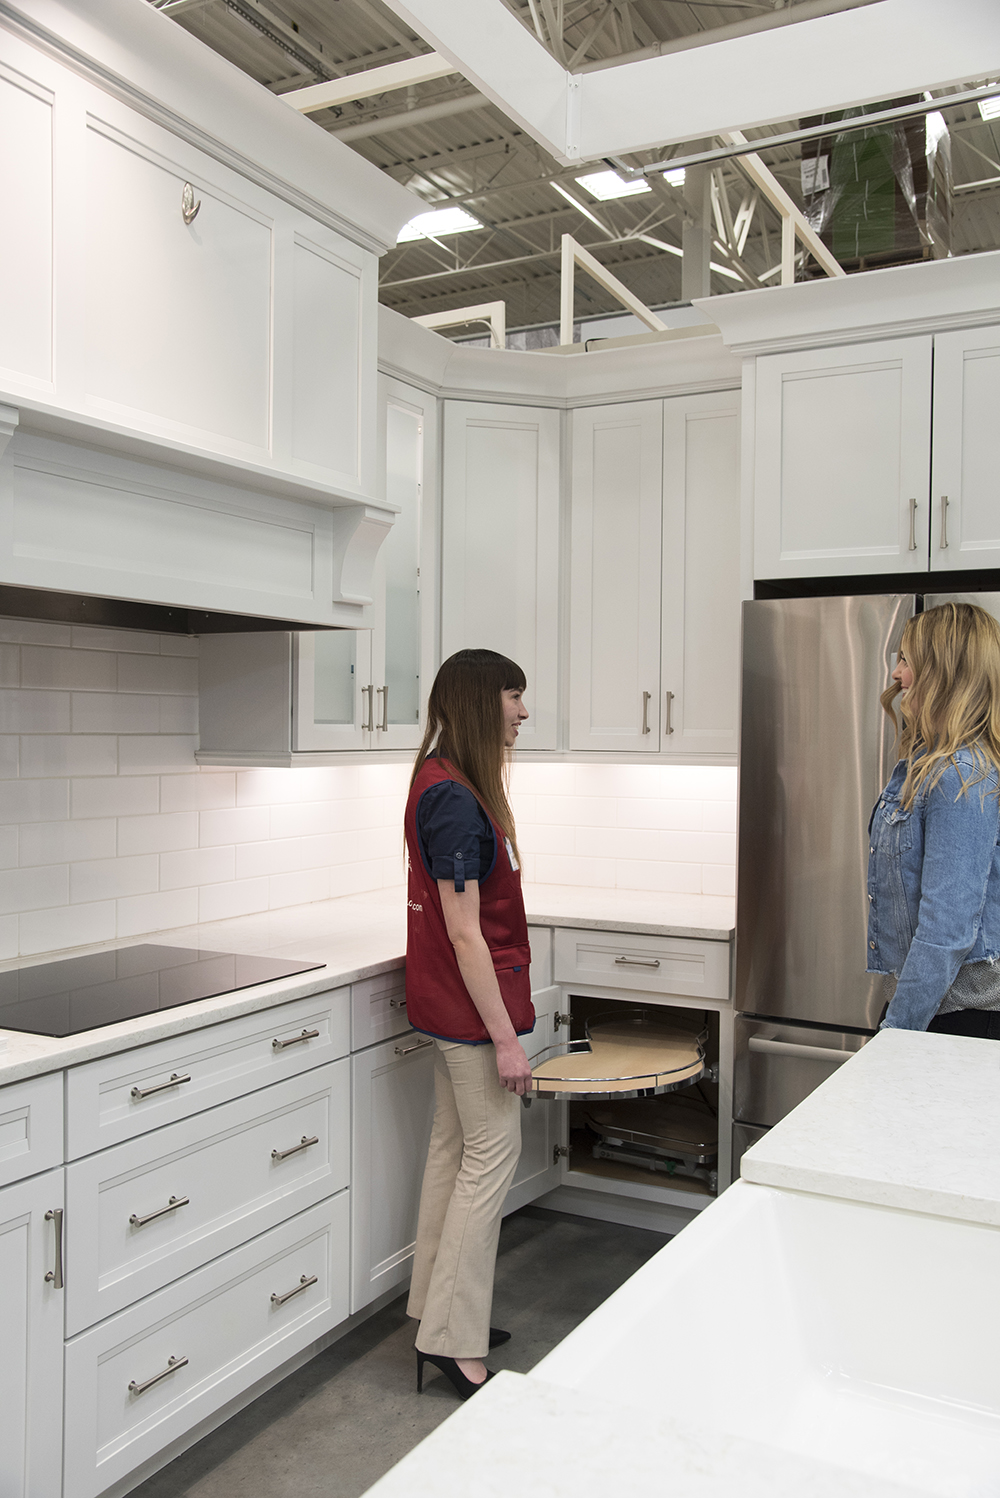 My Cabinetry Selection & Design Process at Lowe's - roomfortuesday.com